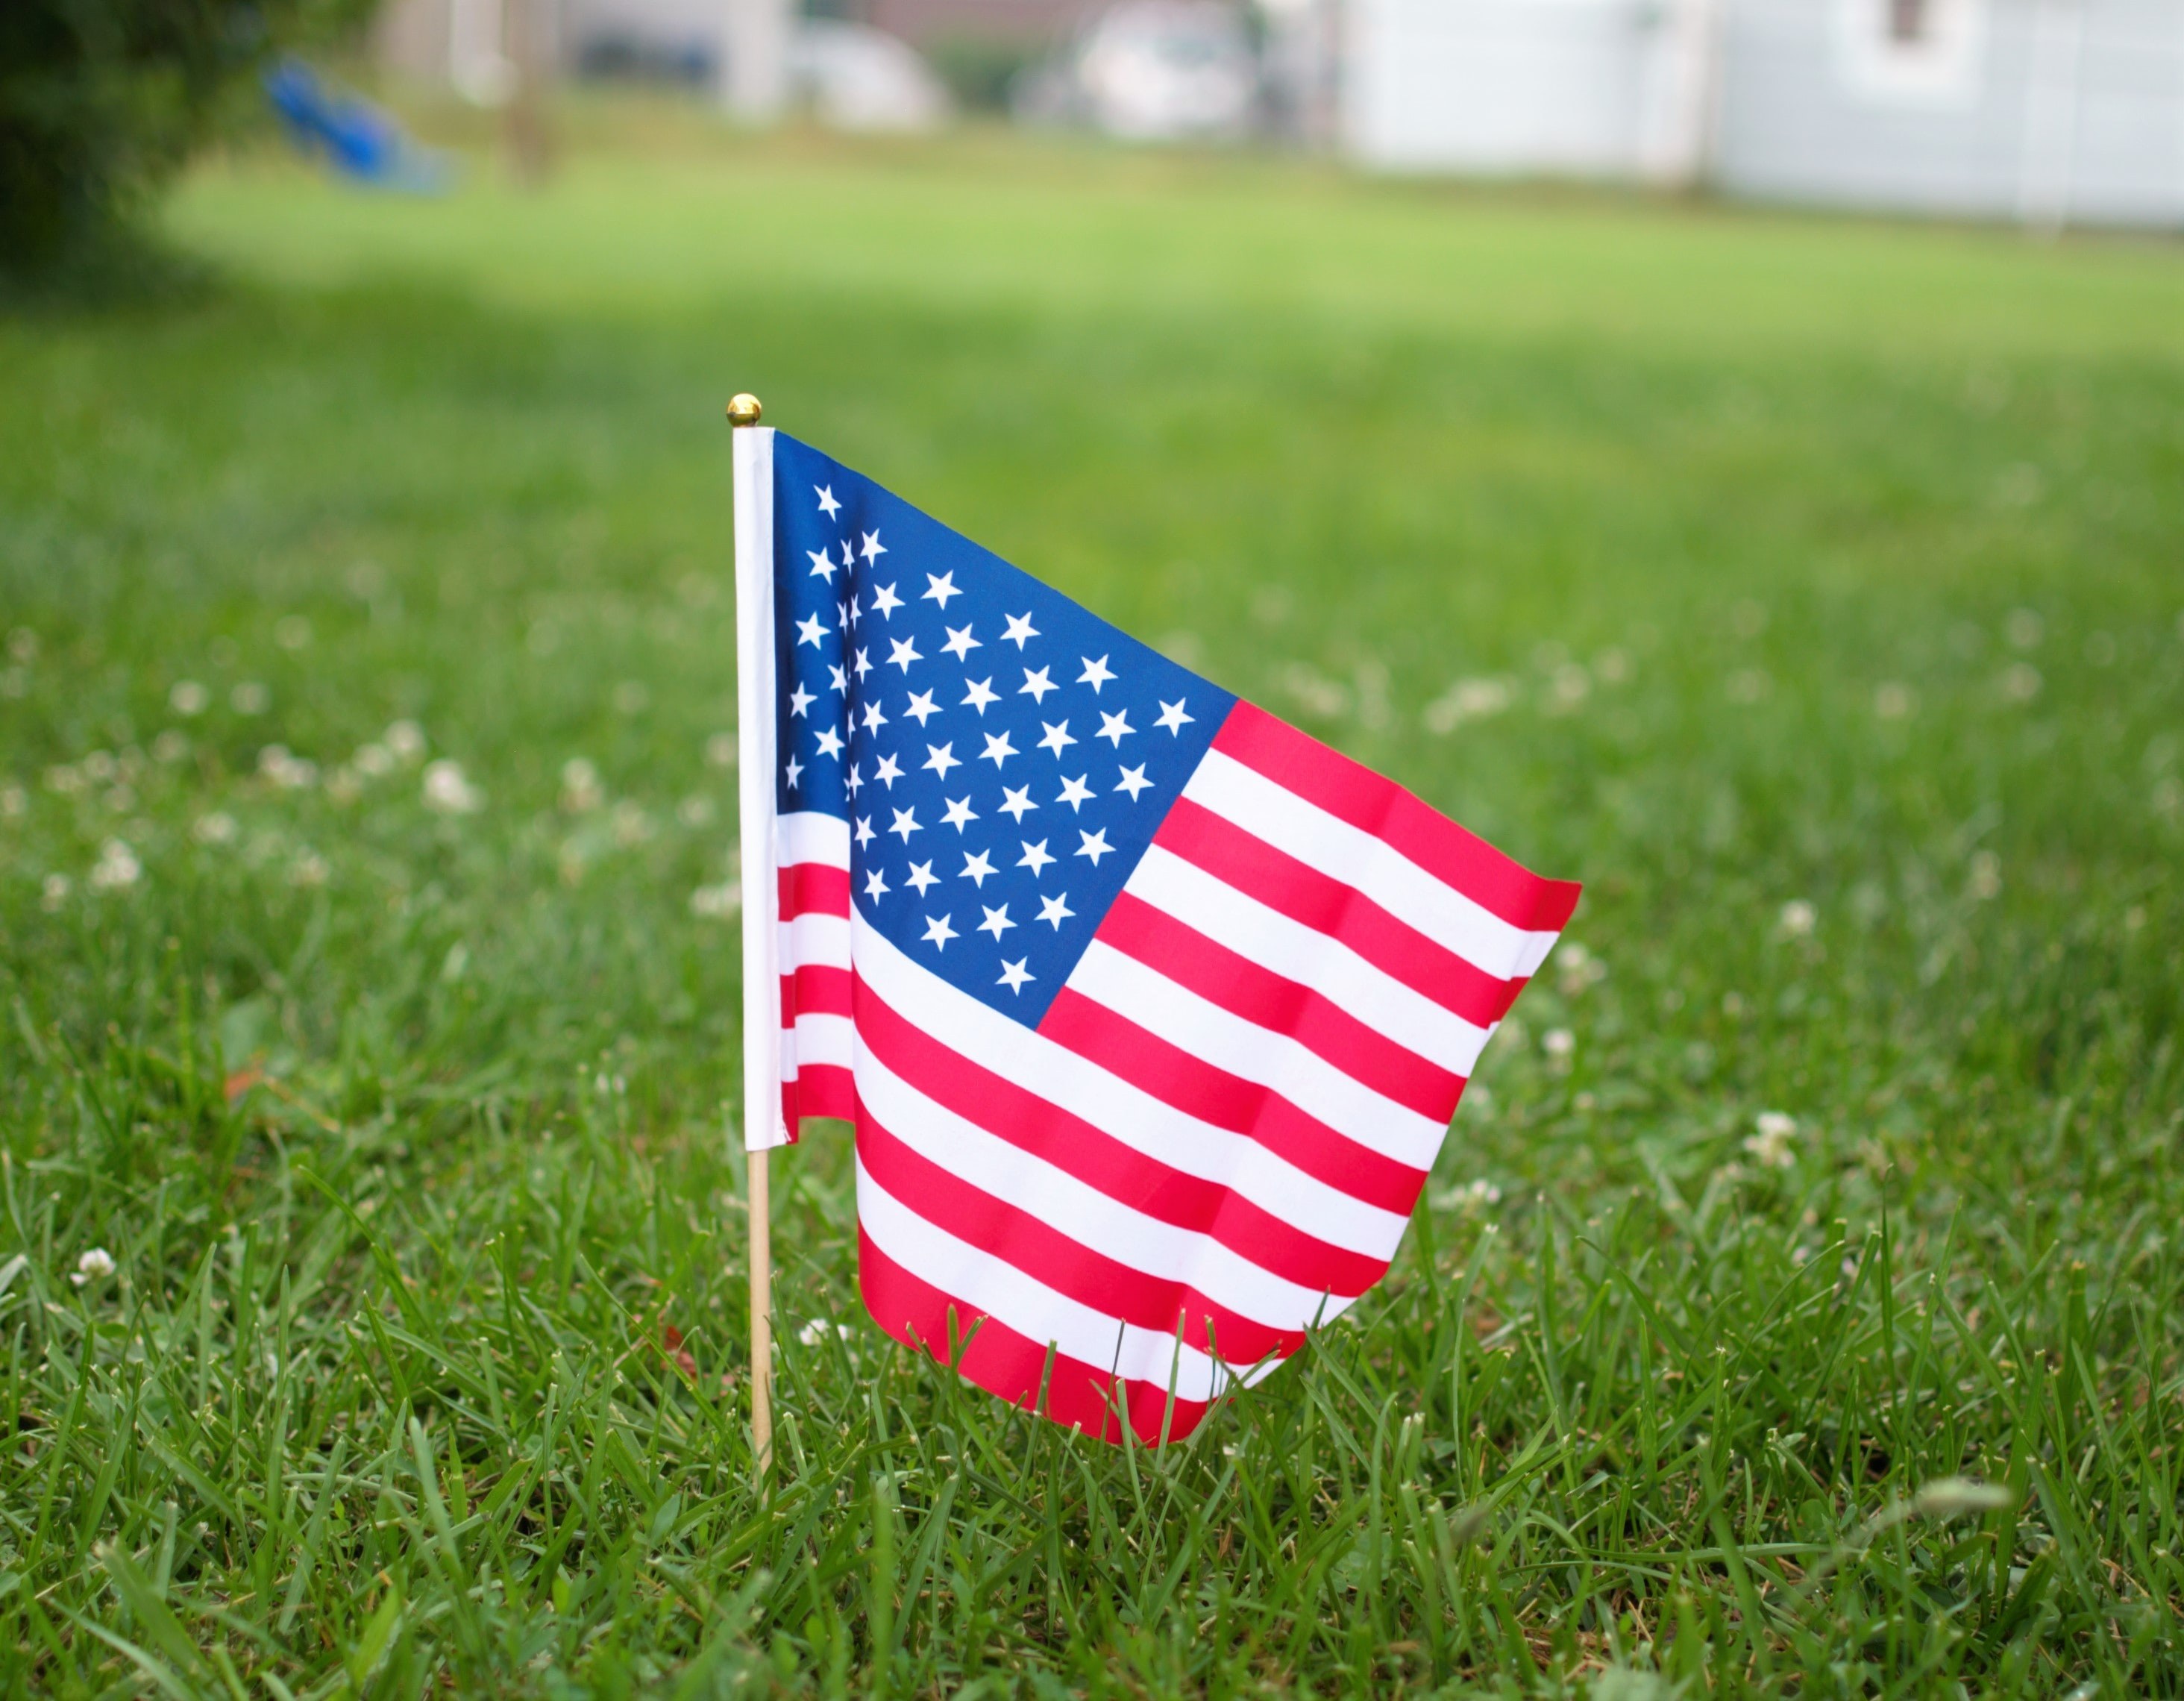 USA flag on green grass